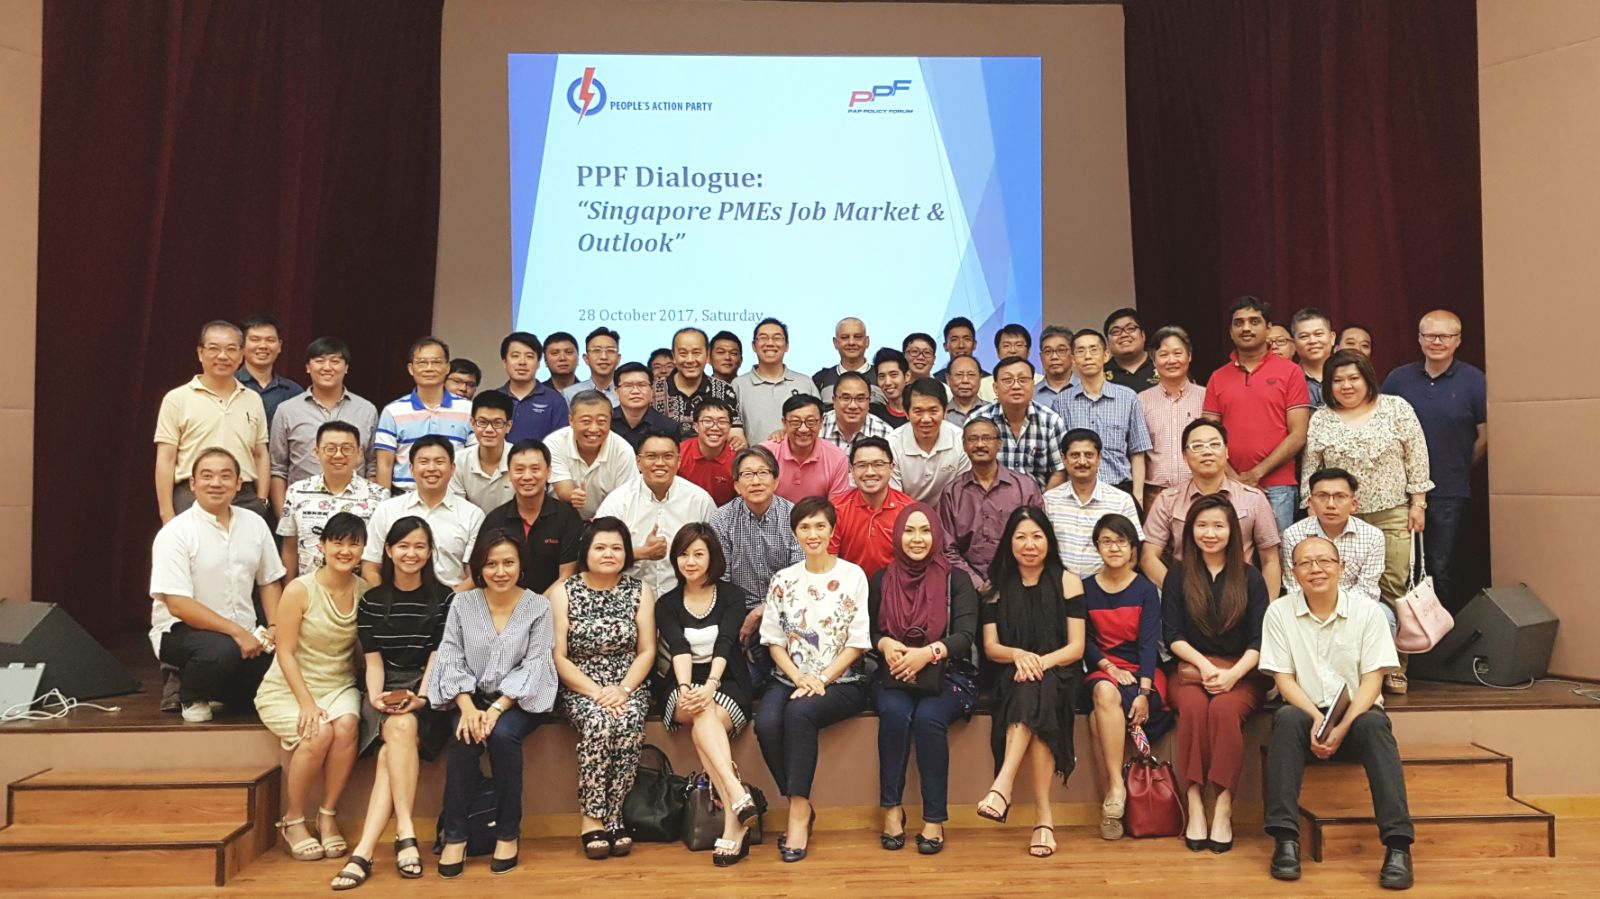 Lim Swee Say with PPF